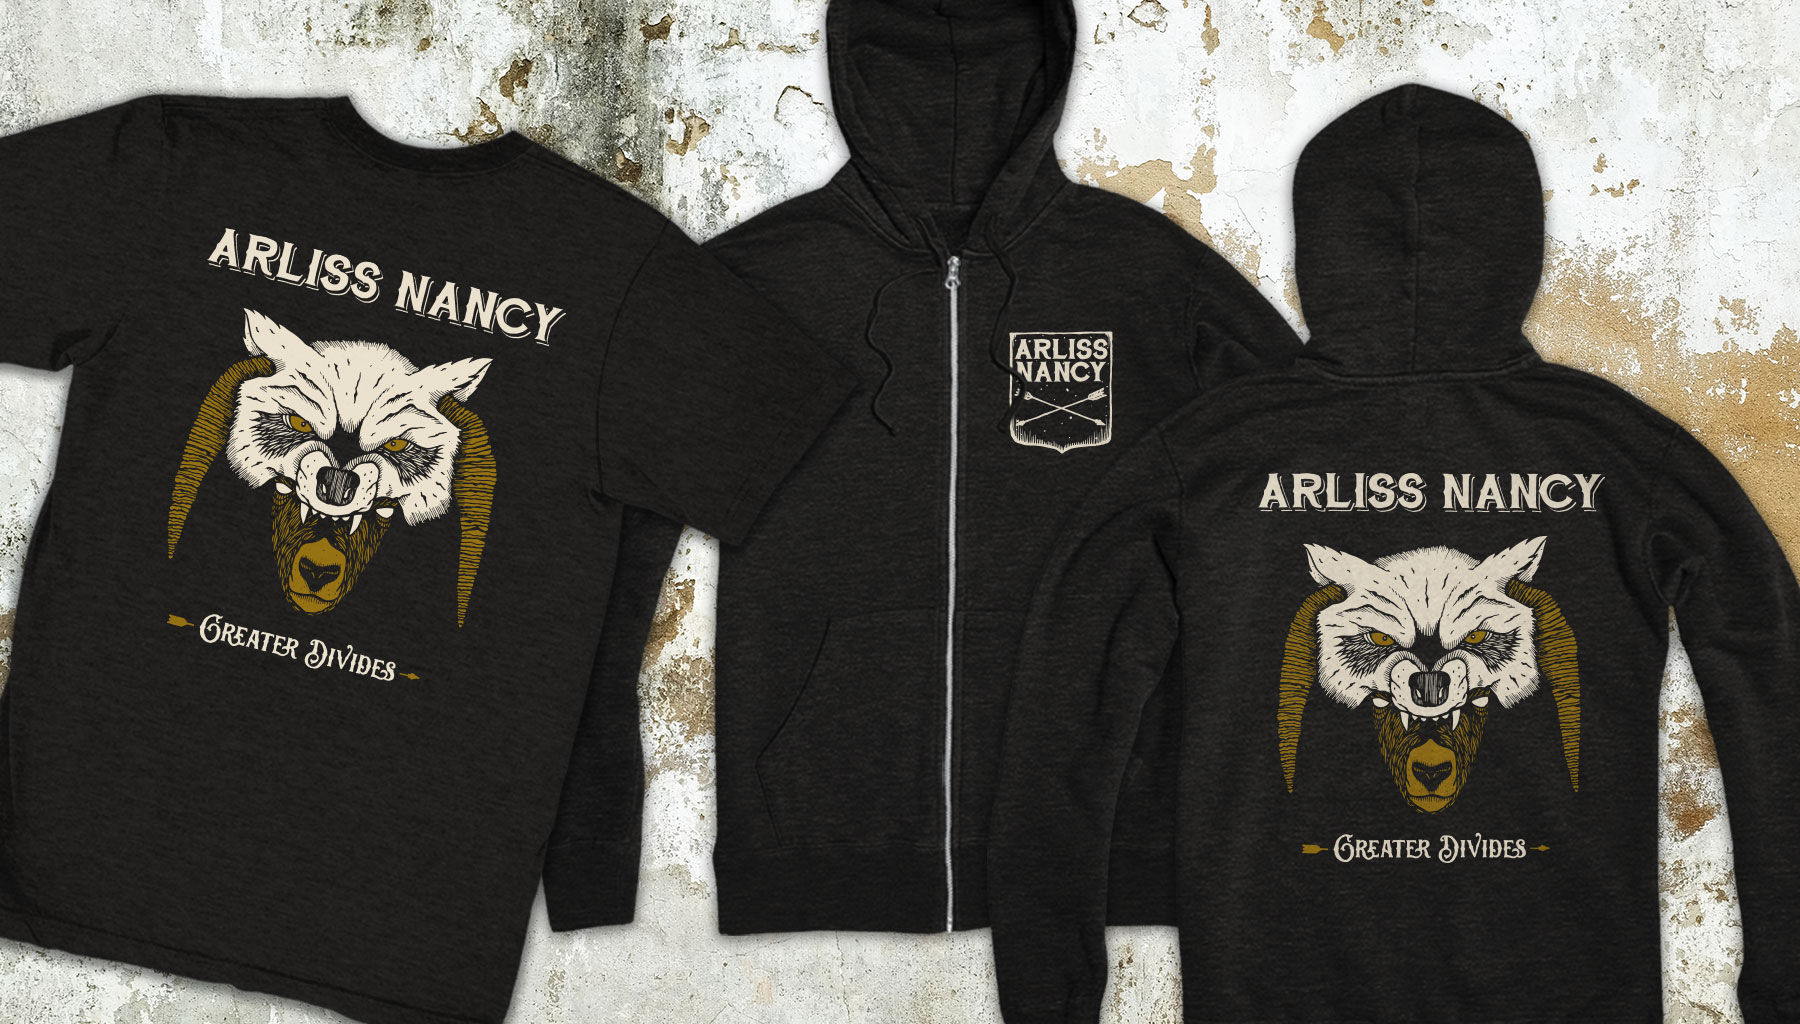 Arliss Nancy Greater Divides Merch